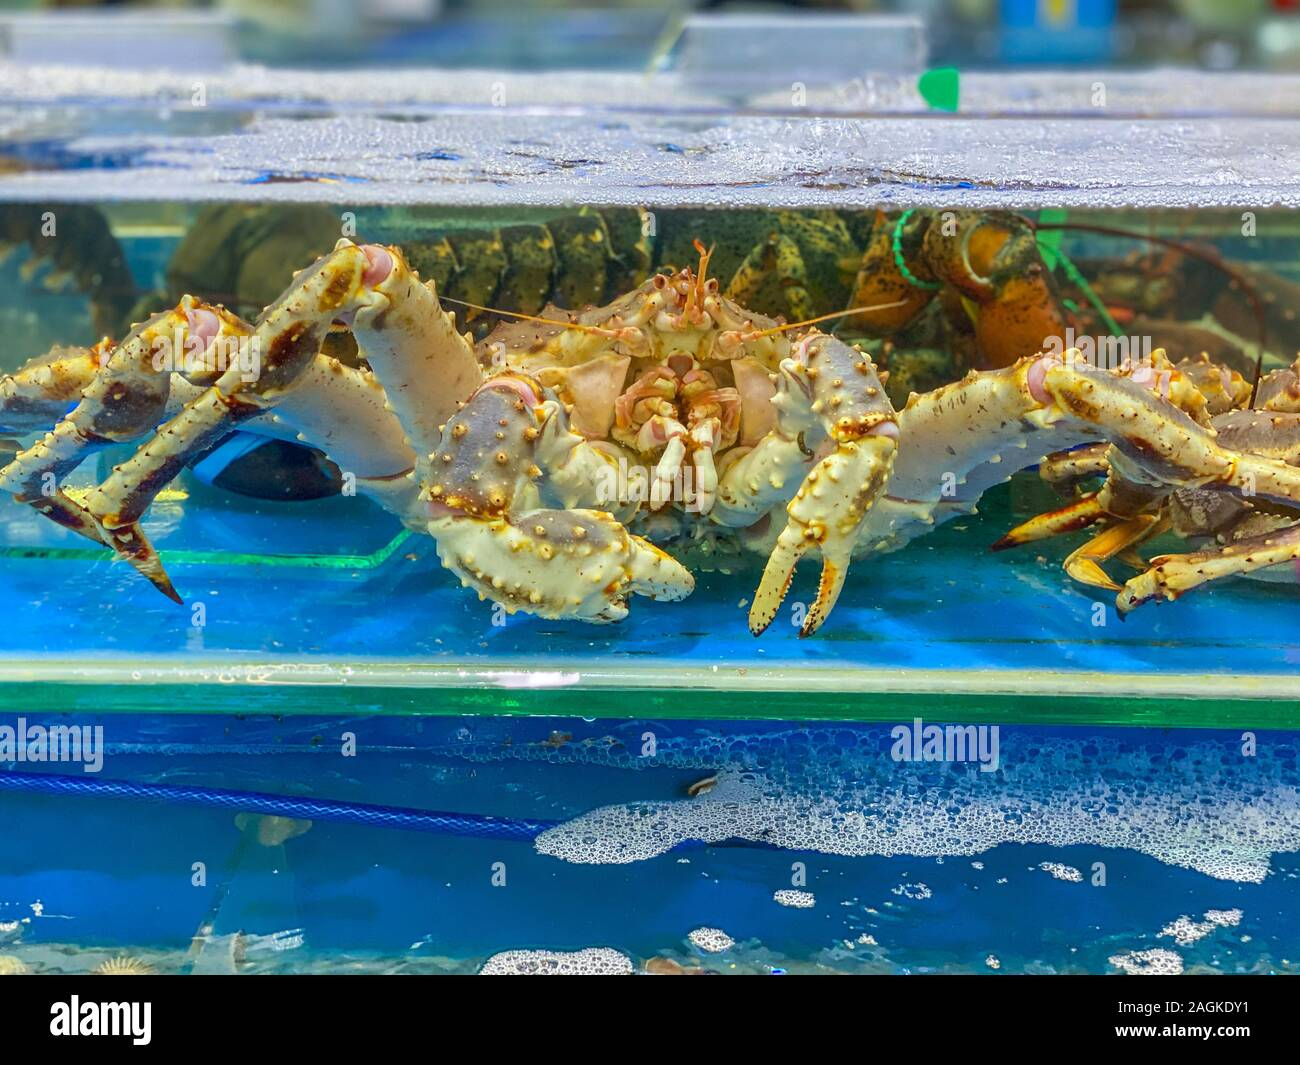 King Seafood Market High Resolution Stock Photography And Images Alamy